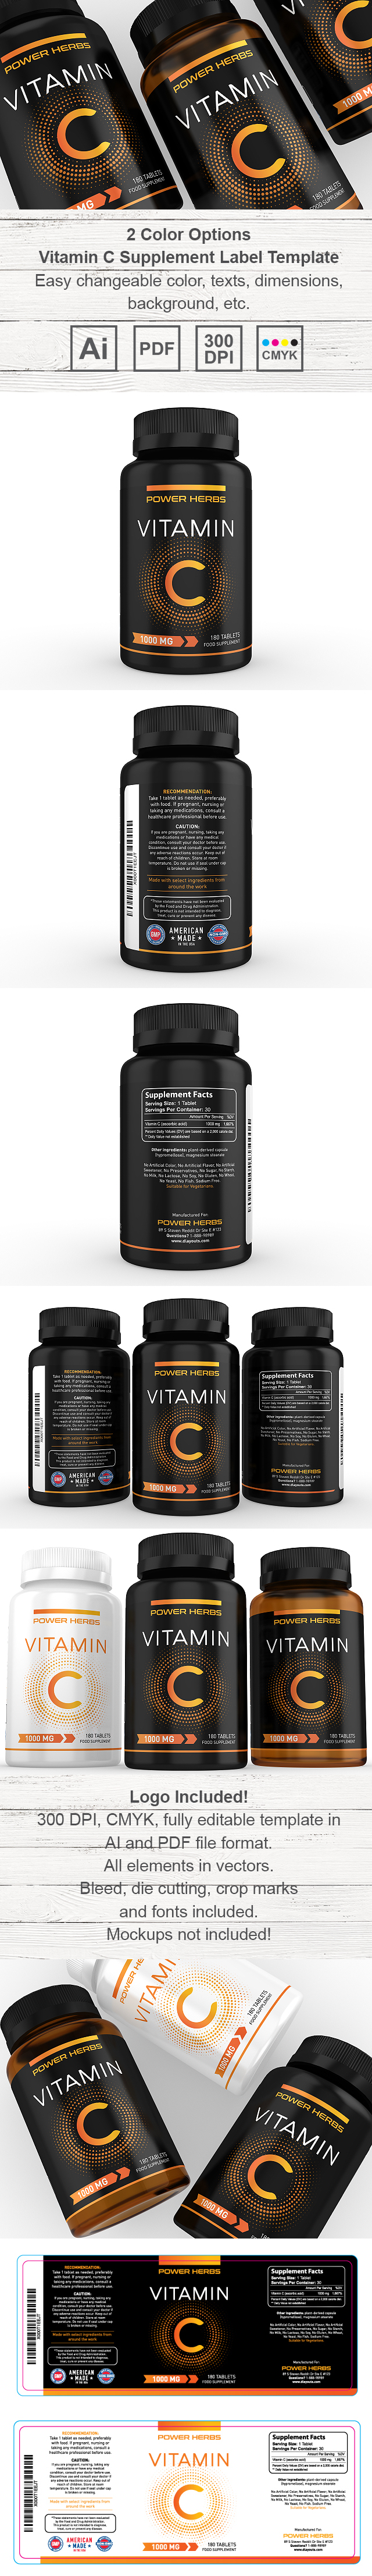 Vitamin C Supplement Label Template